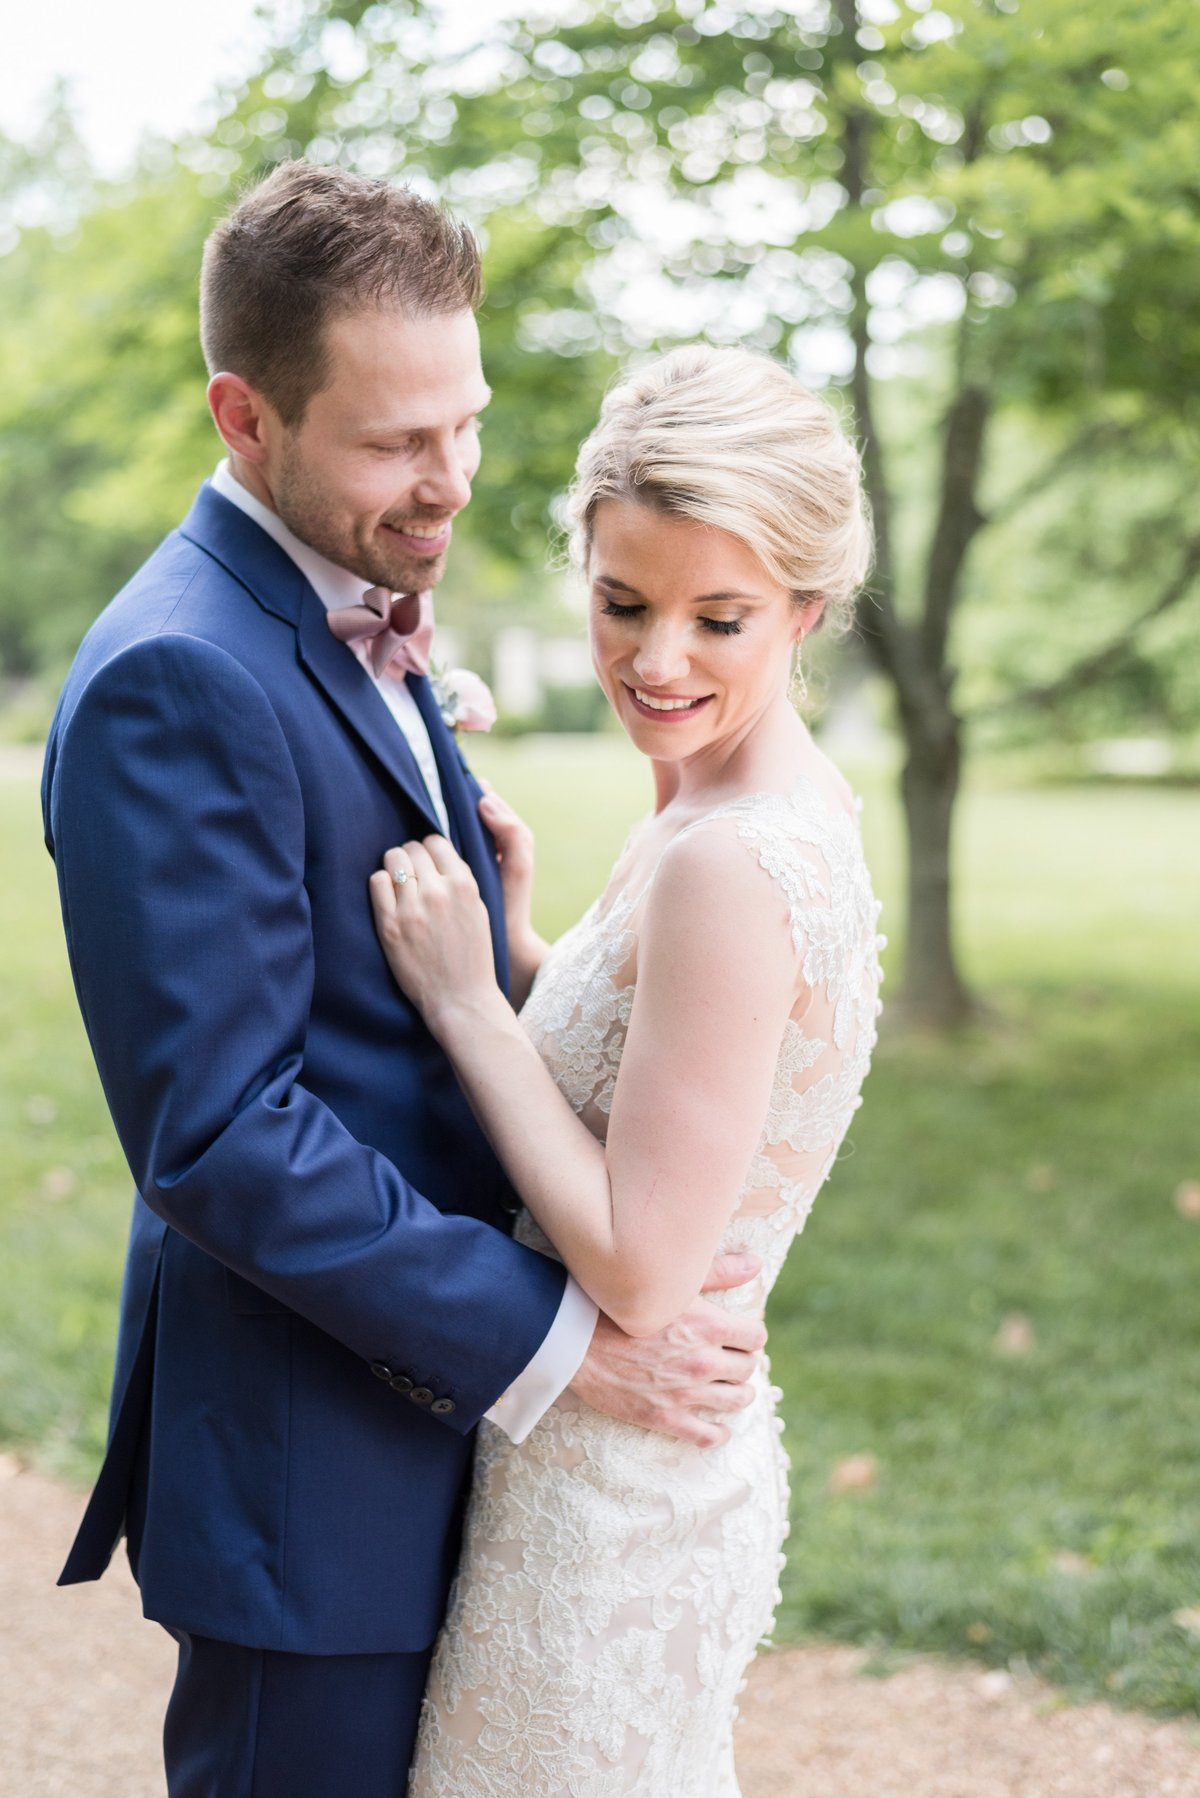 Spring-Wedding-at-Belle-Meade-Plantation-Nashville-Wedding-Photographer+6